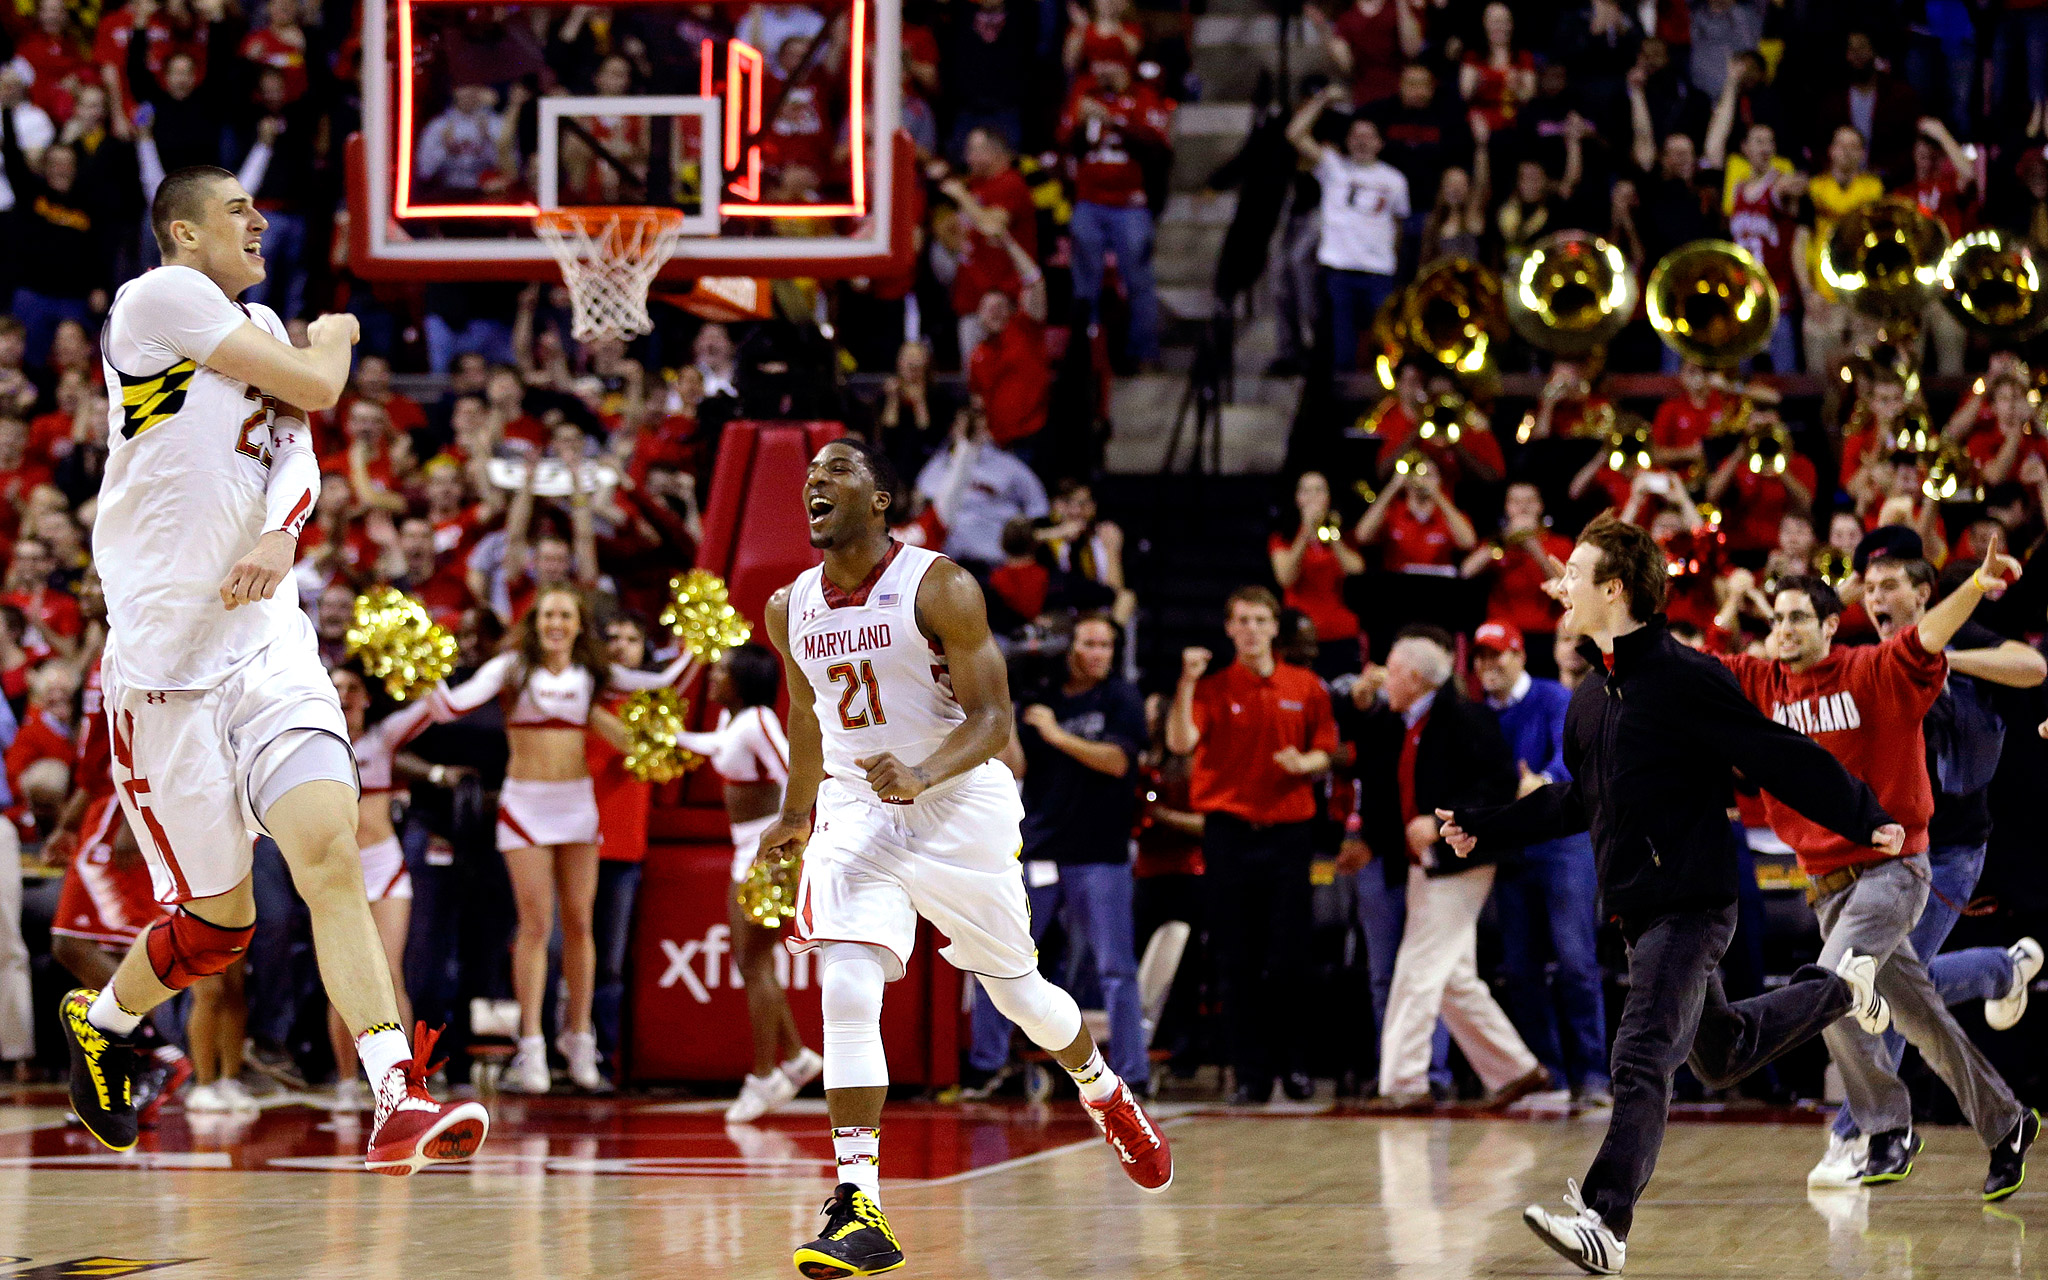 Terps on top